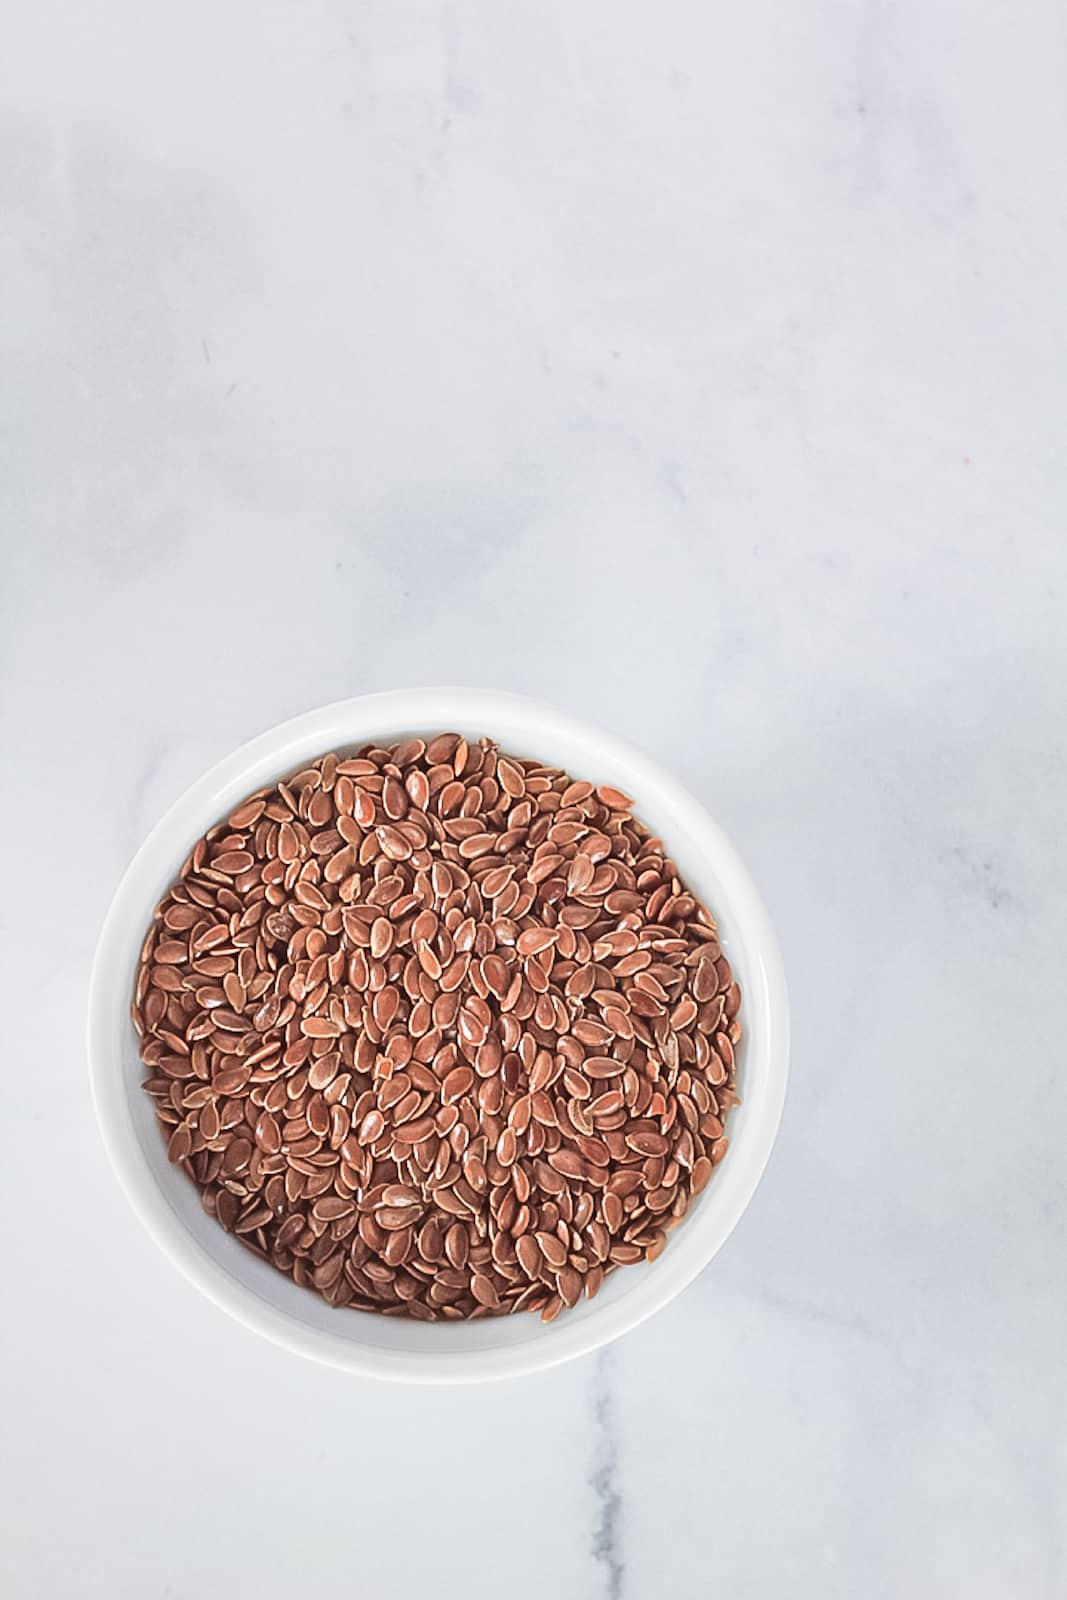 Small white bowl of whole brown flax seeds.